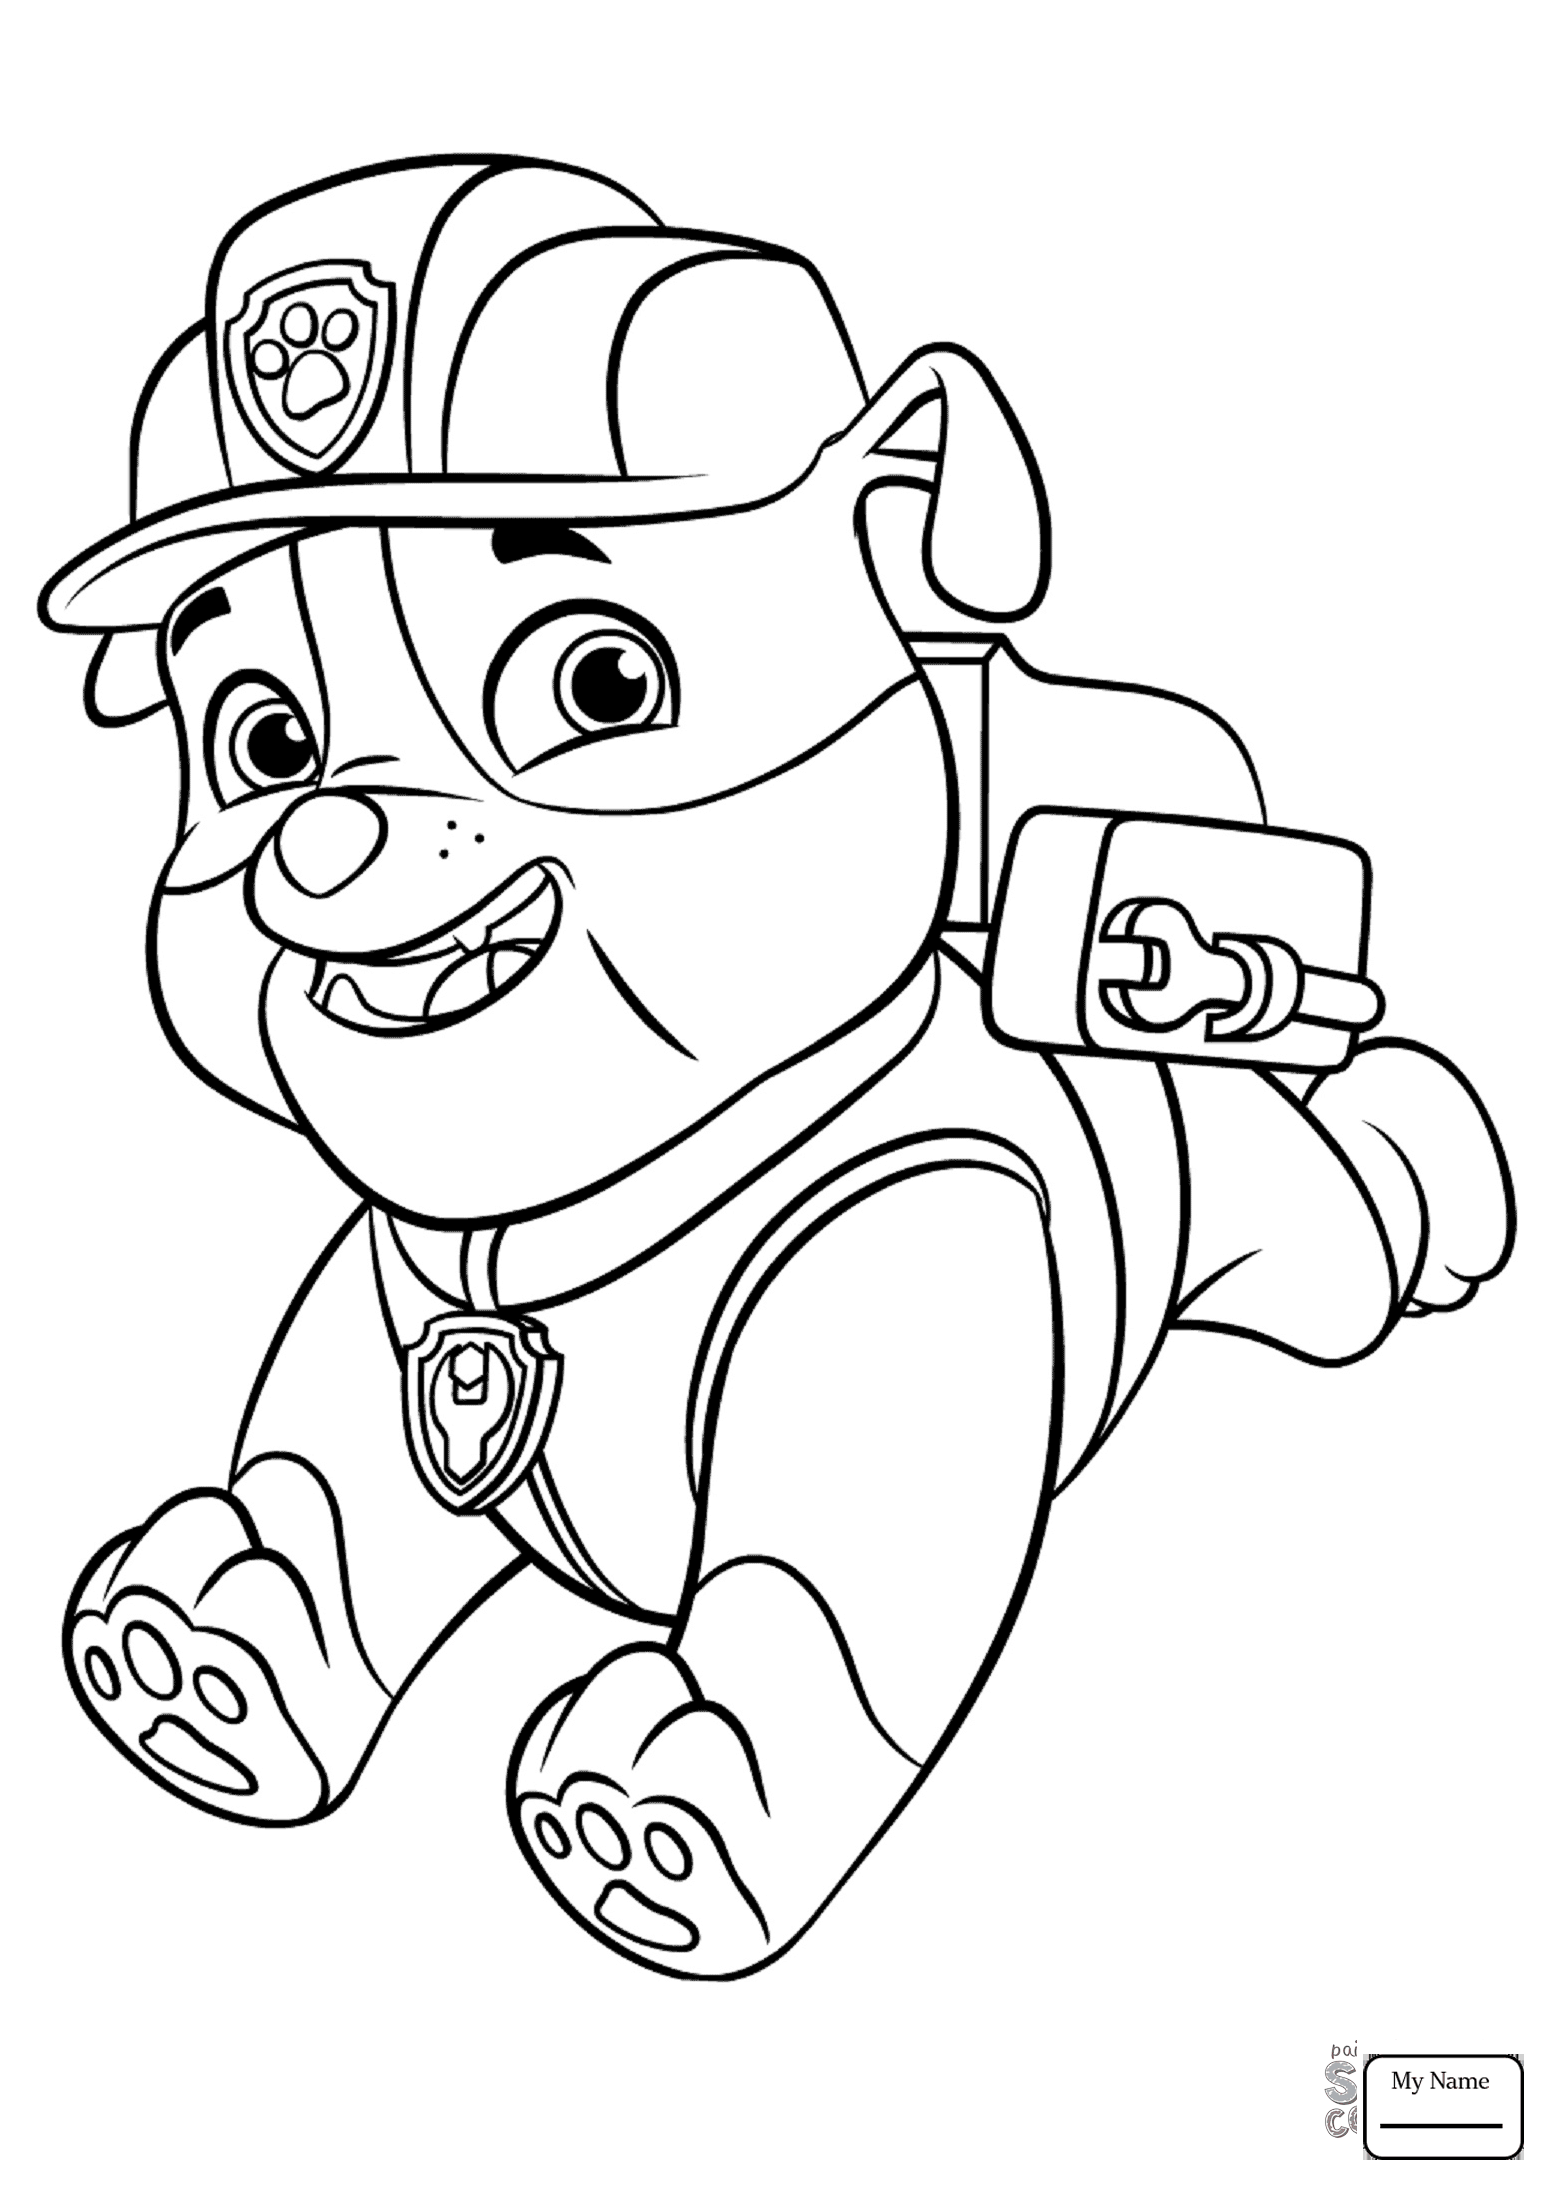 1547x2189 Coloring Pages For Kids Paw Patrol Paw Patrol Chase Cartoons